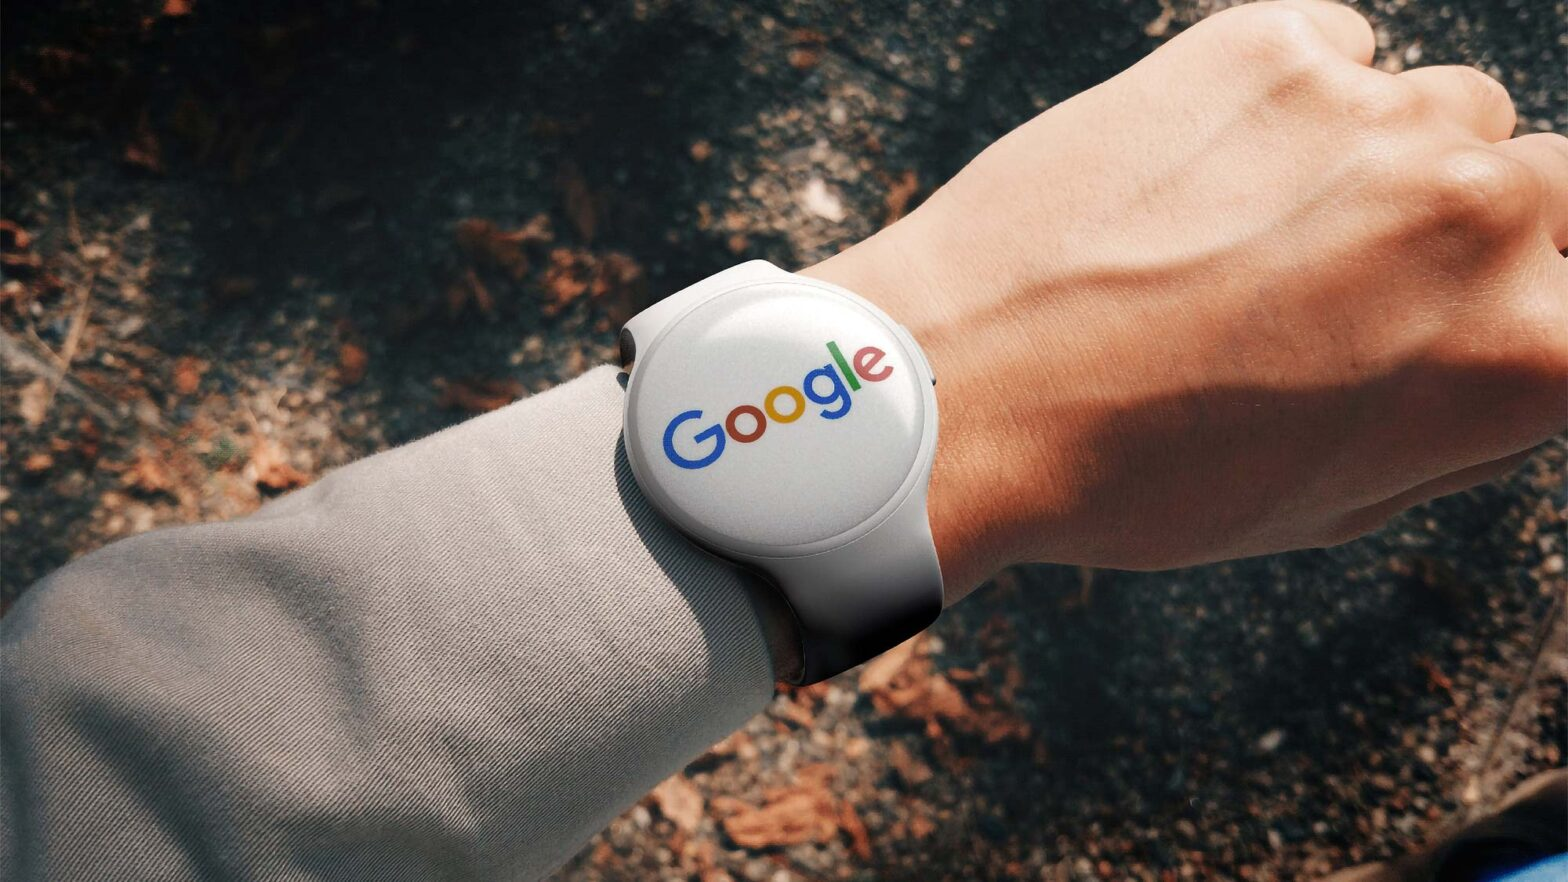 Concept Google Pixel Watch by James Tsai